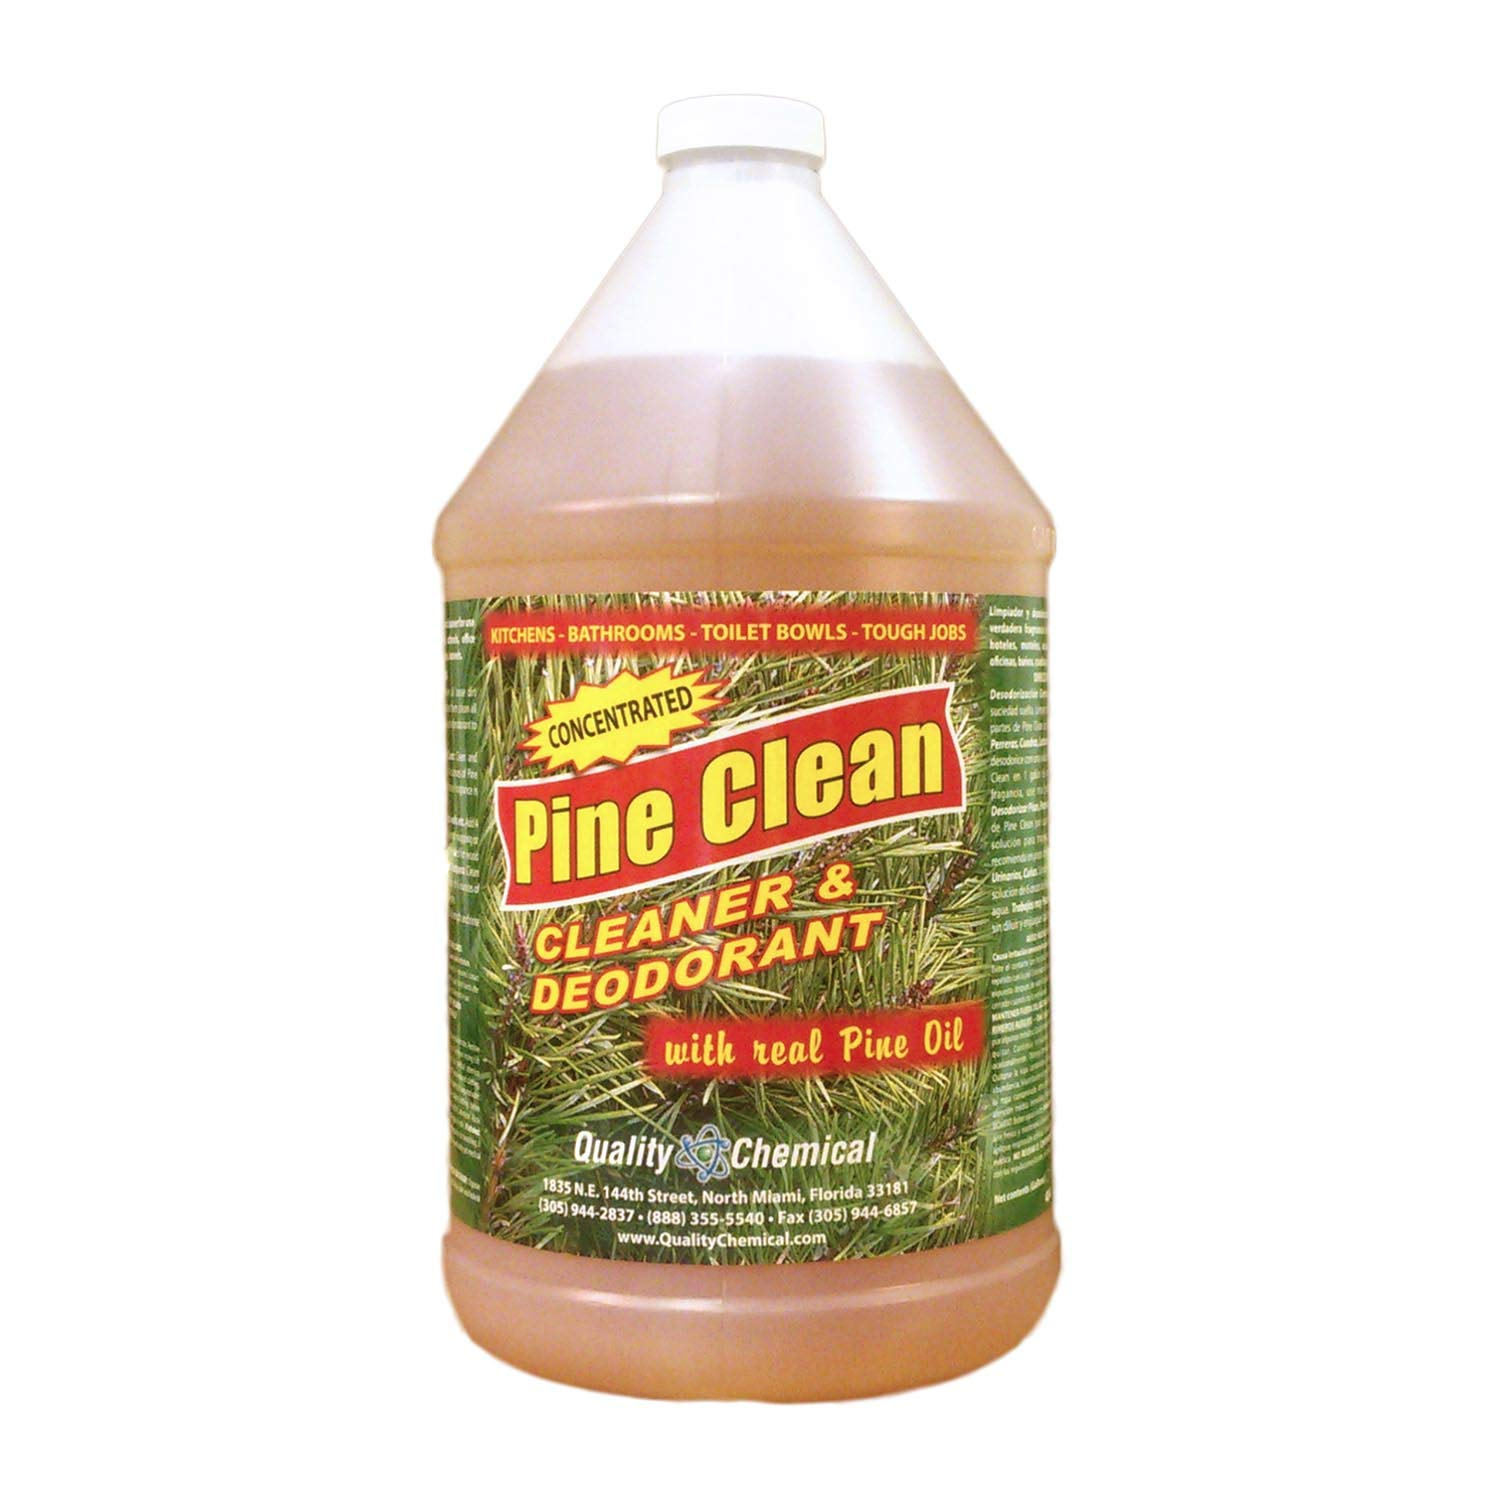 Pine Clean - Brand new A Powerful Pleasant Pure Cleaner New Orleans Mall deodorizing with